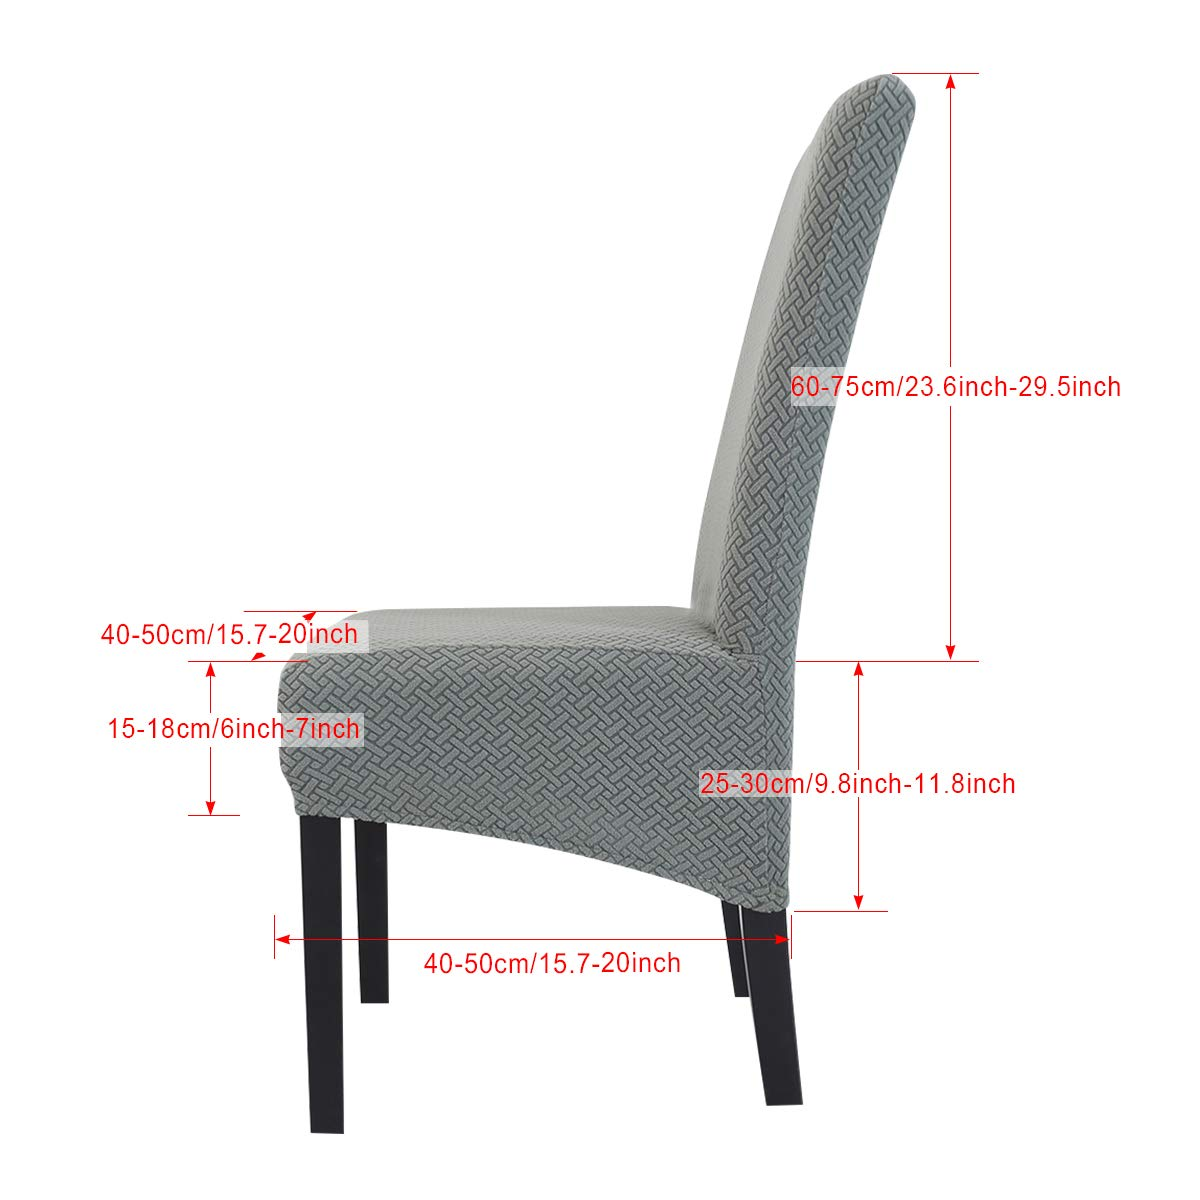 Camel, 1 PCS//Packet Hengweiuk Chair Covers Stretch Dining Chair Covers Removable High Back Chair Protective Washable Dining Cover Slipcover for Dining Room Kitchen Wedding Banquet Party Decoration